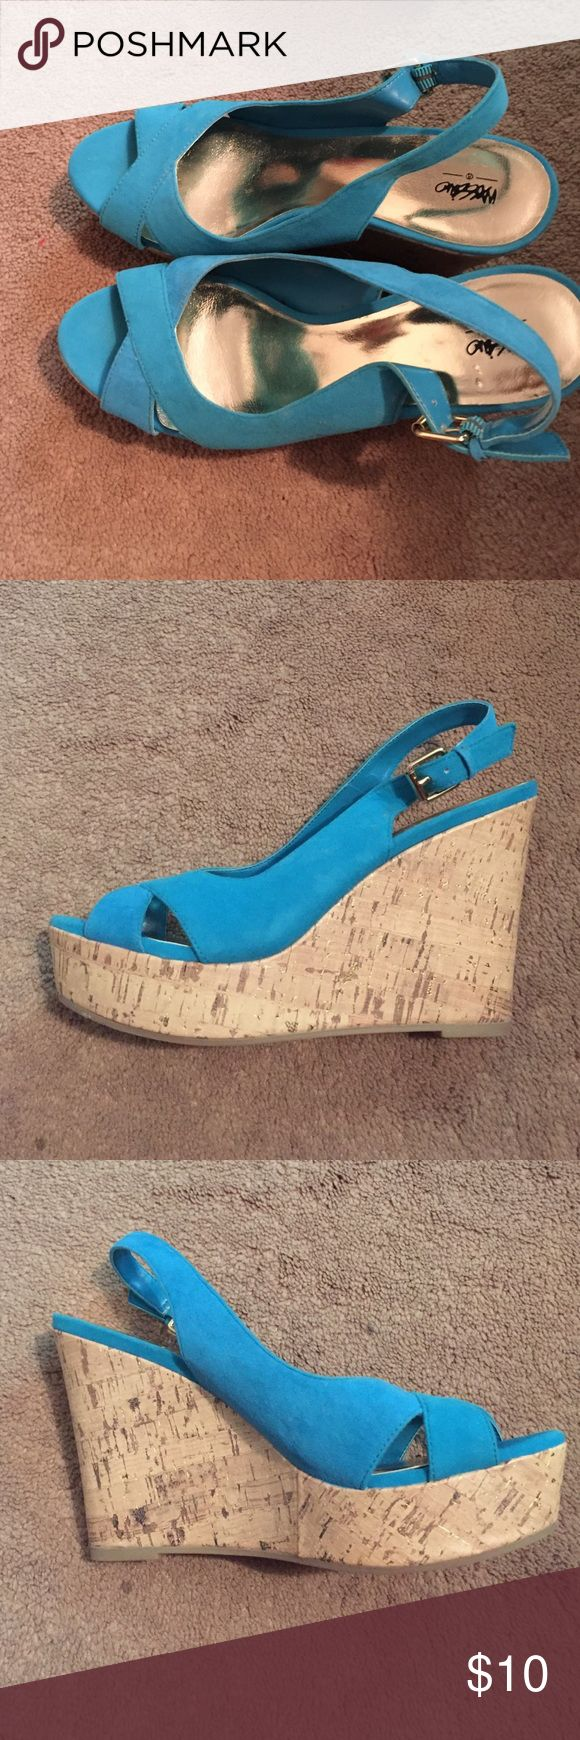 Blue cork wedges Blue wedges with cork bottom from target.Only worn once so in great condition! Shoes Wedges